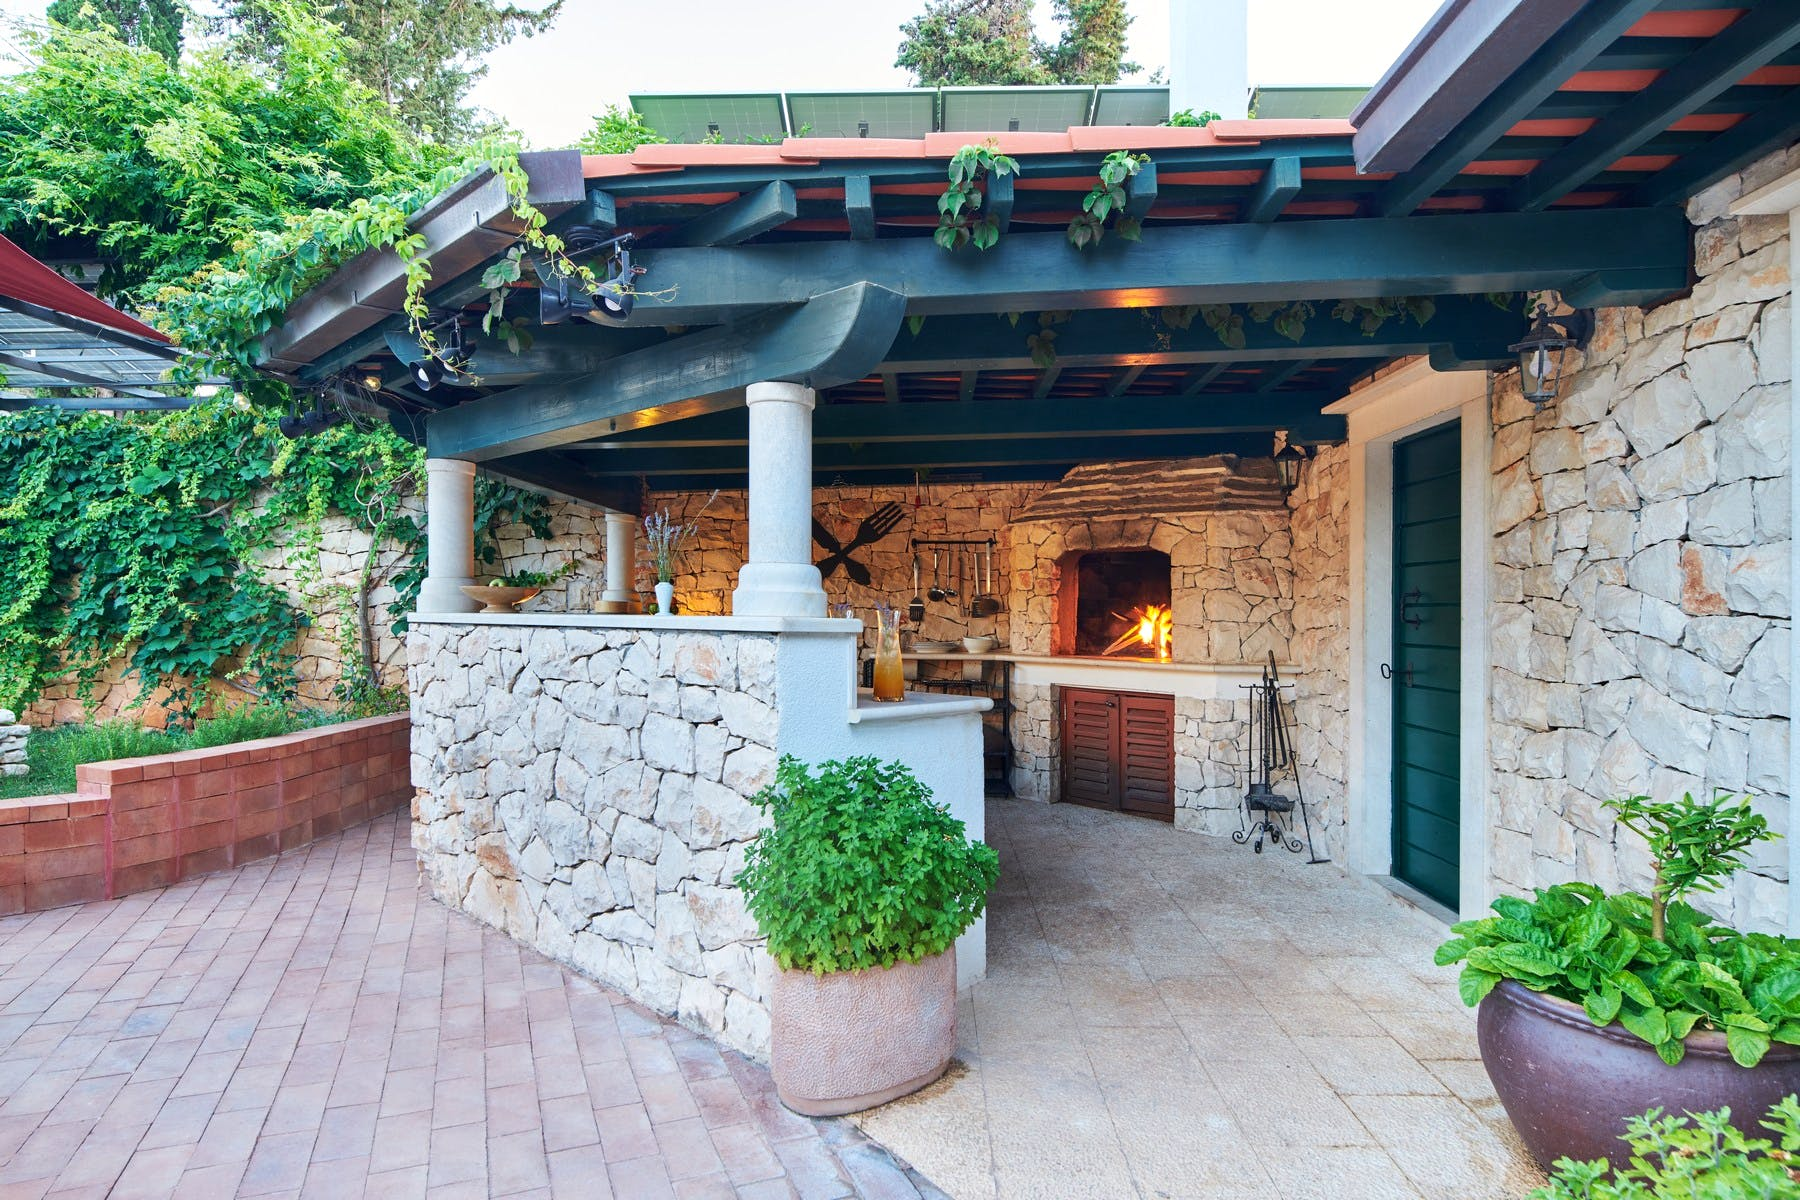 Outdoor fireplace with dining area